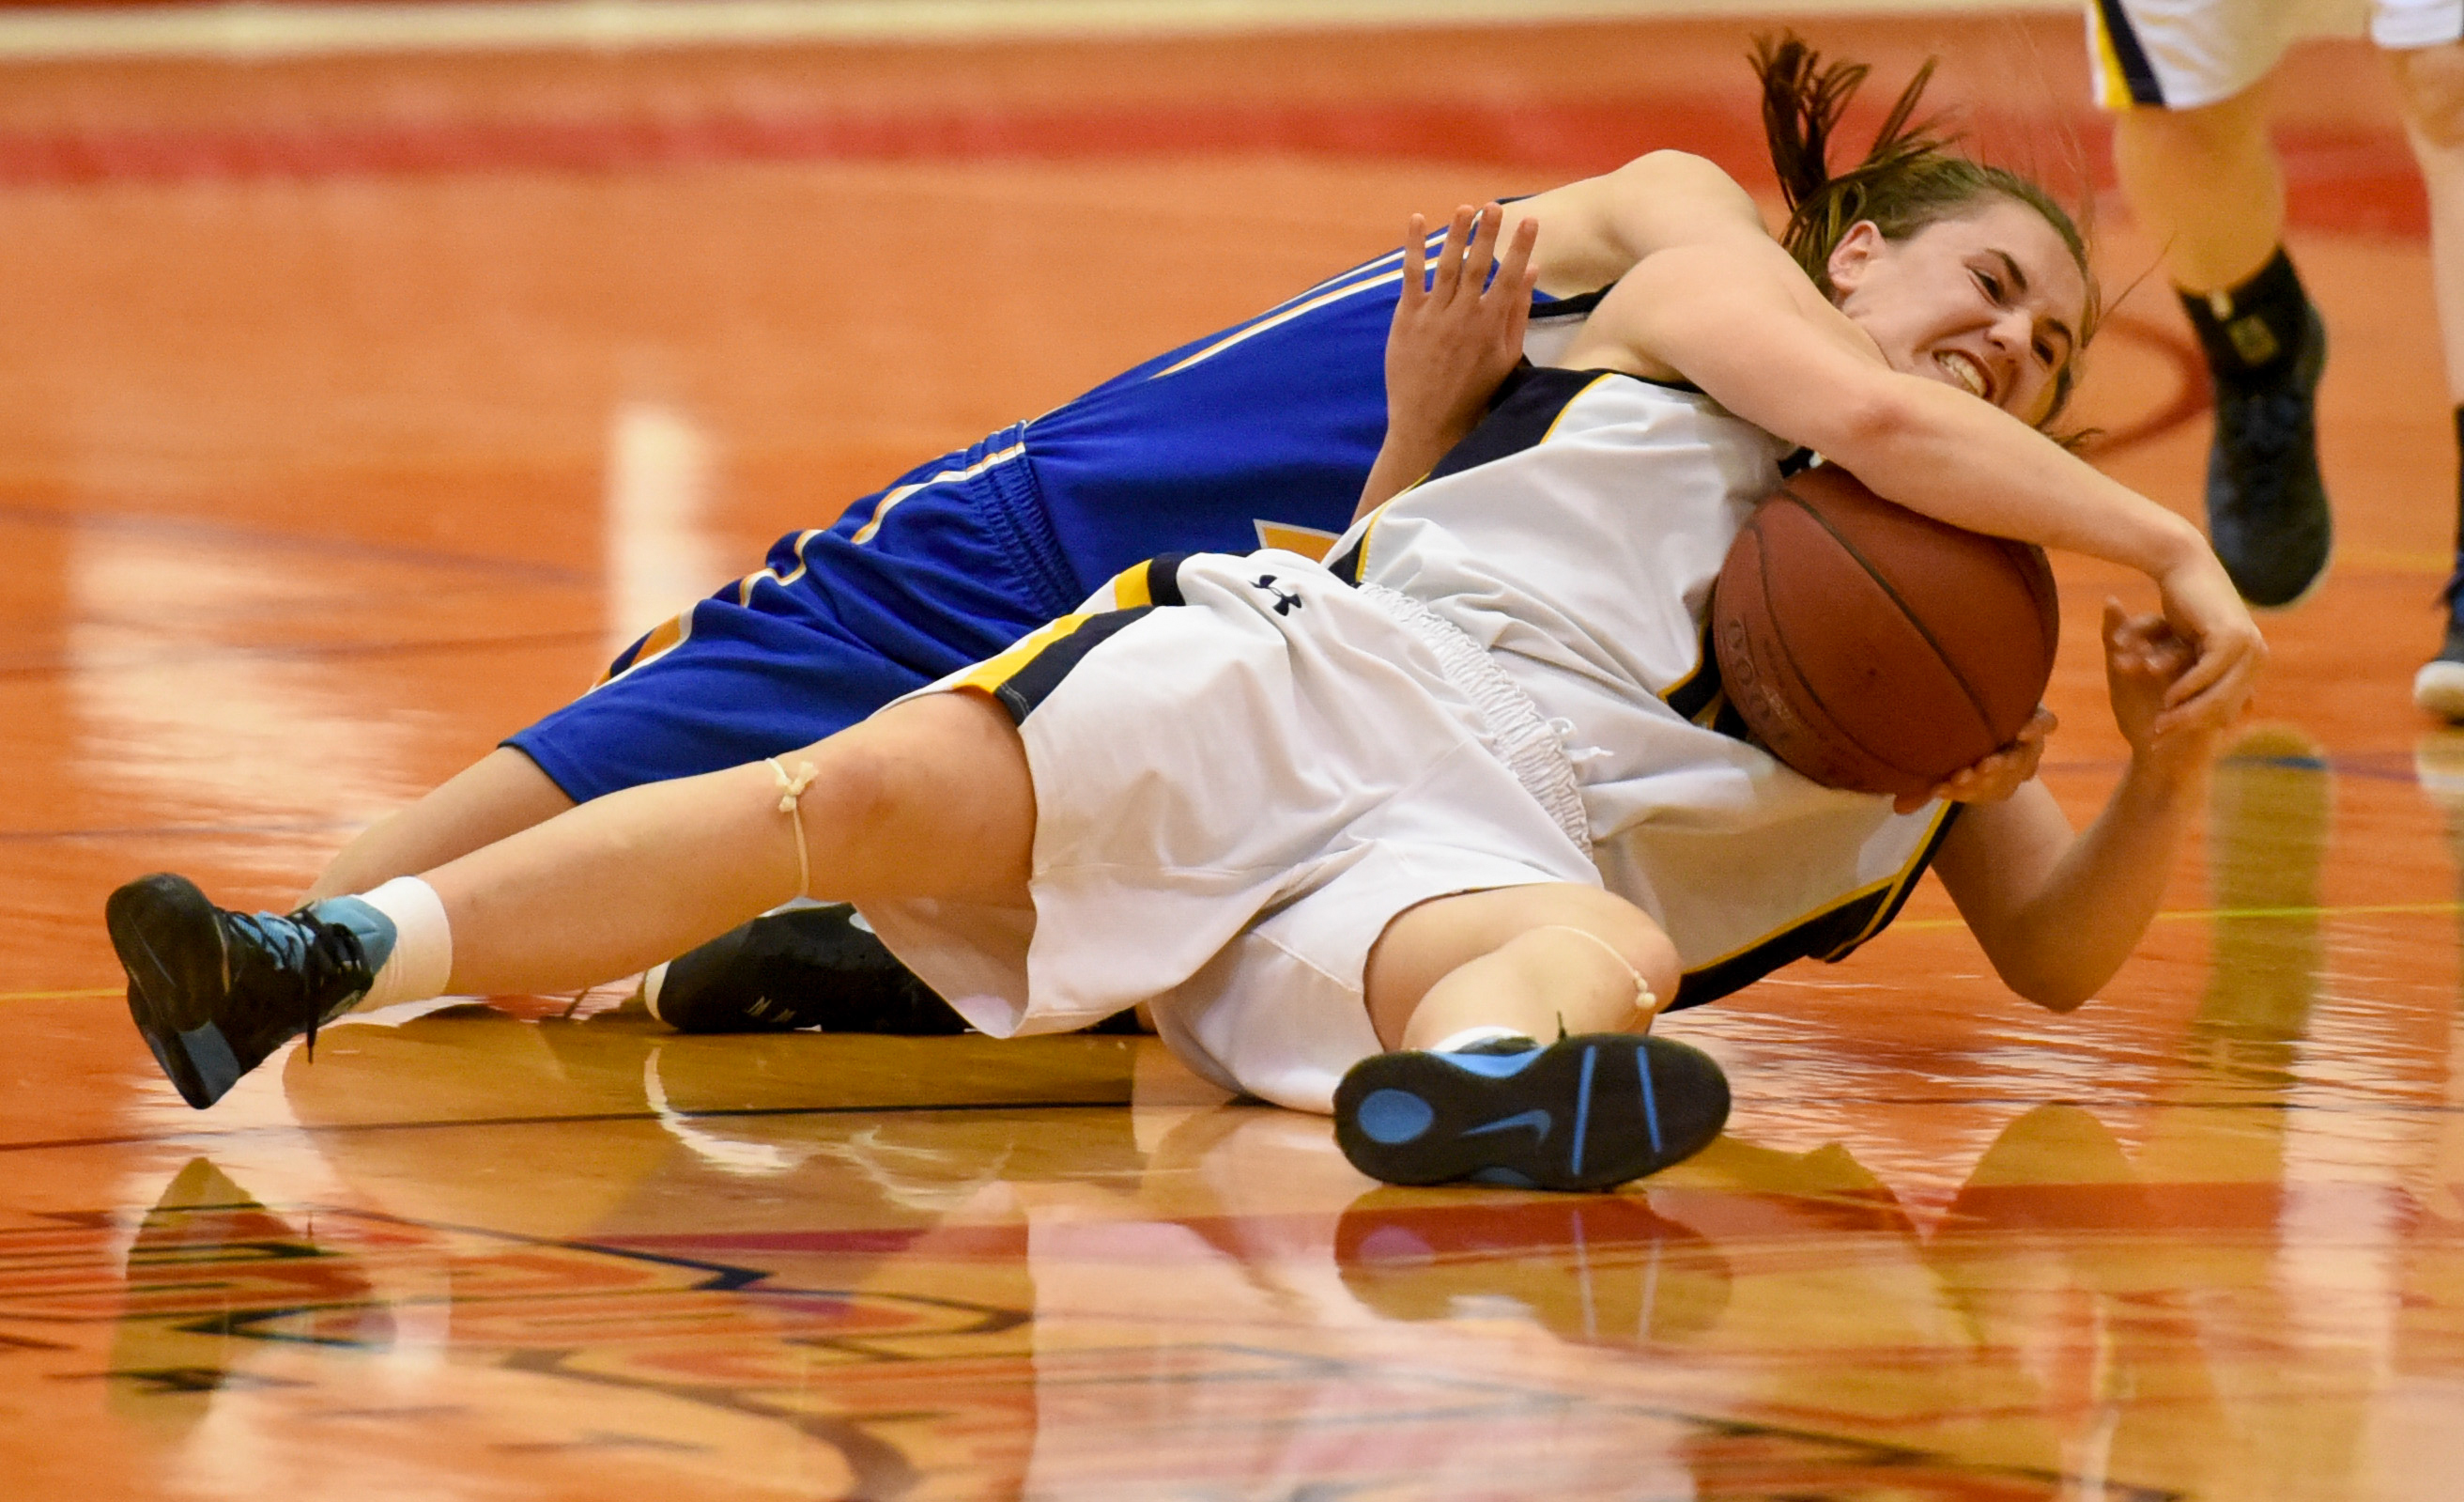 Basketball Battle: UBC Okanagan Heat post Robyn Aulin-Haynes wrestles the ball away from an attacking Saint Mary's University Lightning player during a exhibition game at the SAIT Campus Centre gym. The Heat defeated the Lightning 84-34. (Photo by Kenneth Appleby/The Press)